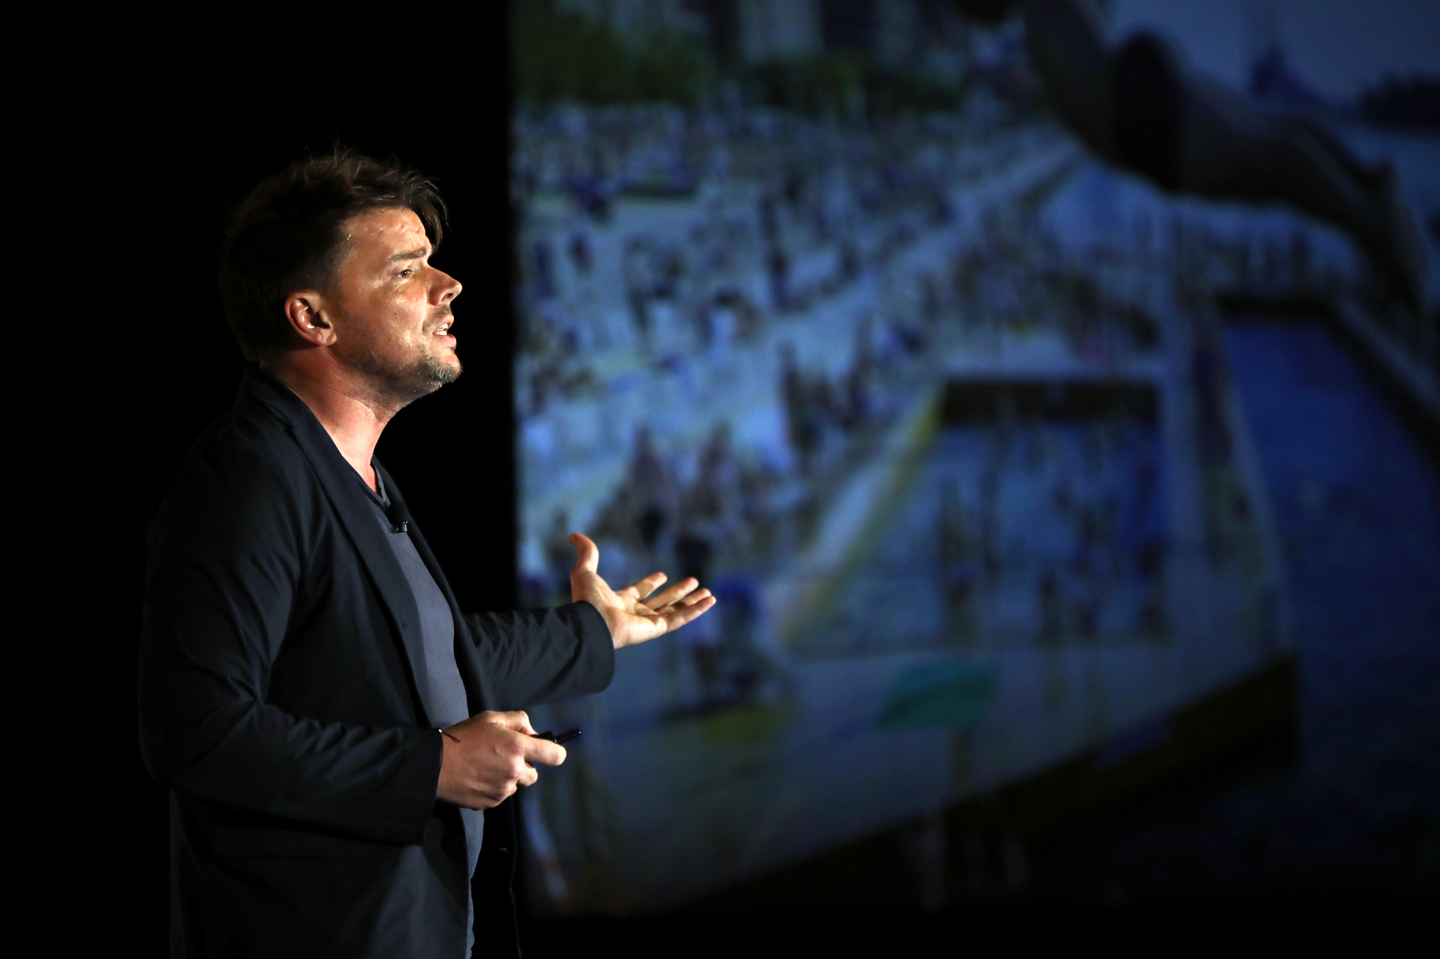 Bjarke Ingels speaks onstage at Featured Session: FORMGIVING with Bjarke Ingels.